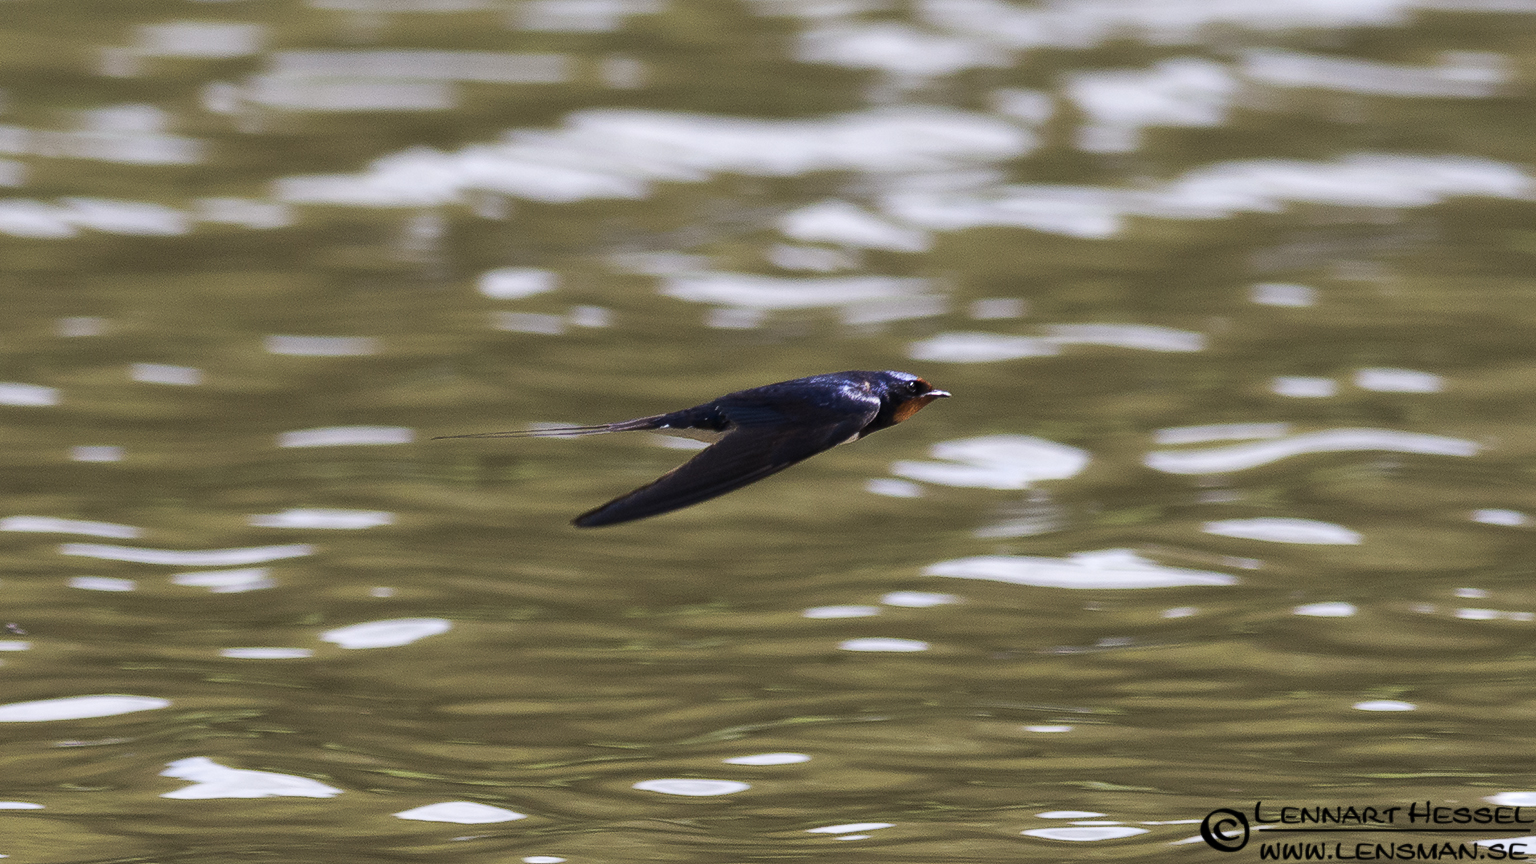 A Barn Swallow speeding over the water at Lärjeån.